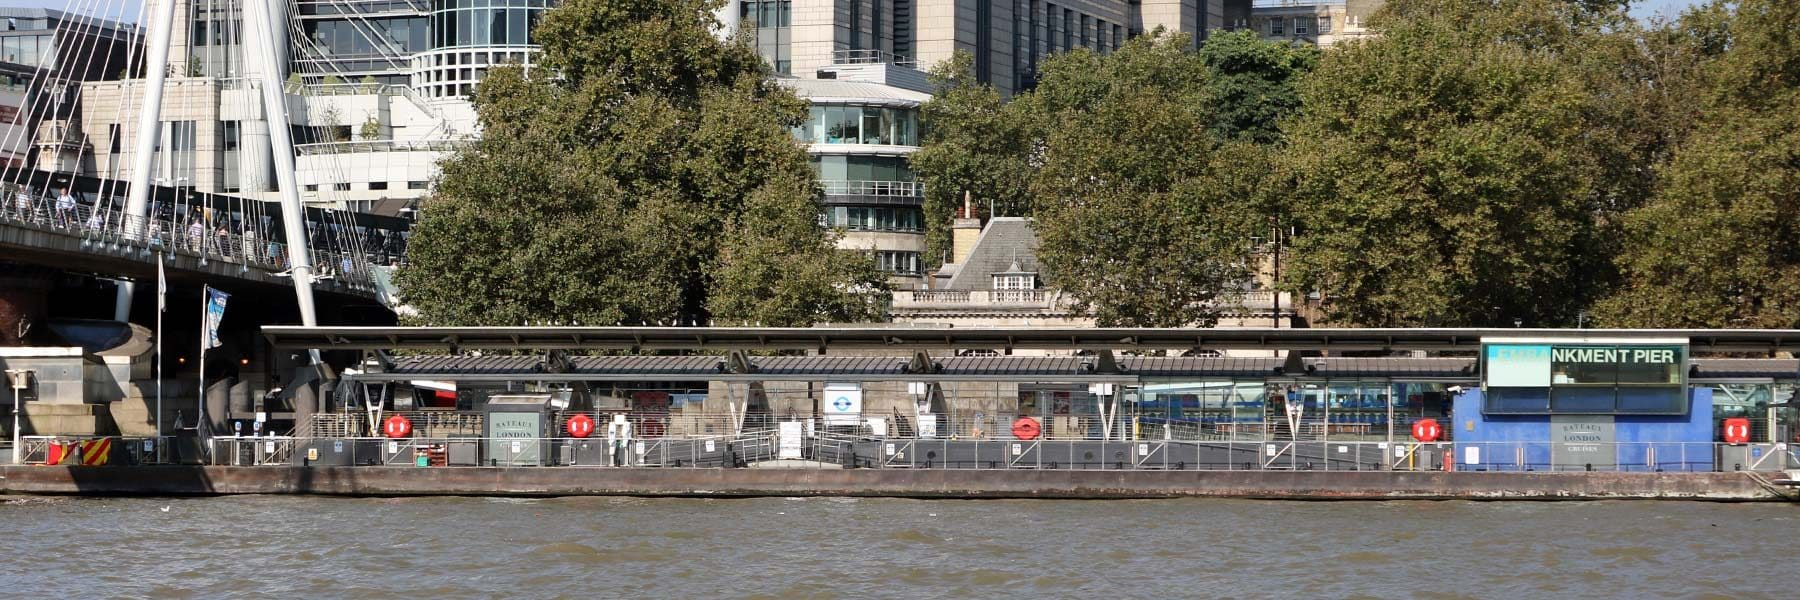 Embankment Pier, Victoria Embankment, London